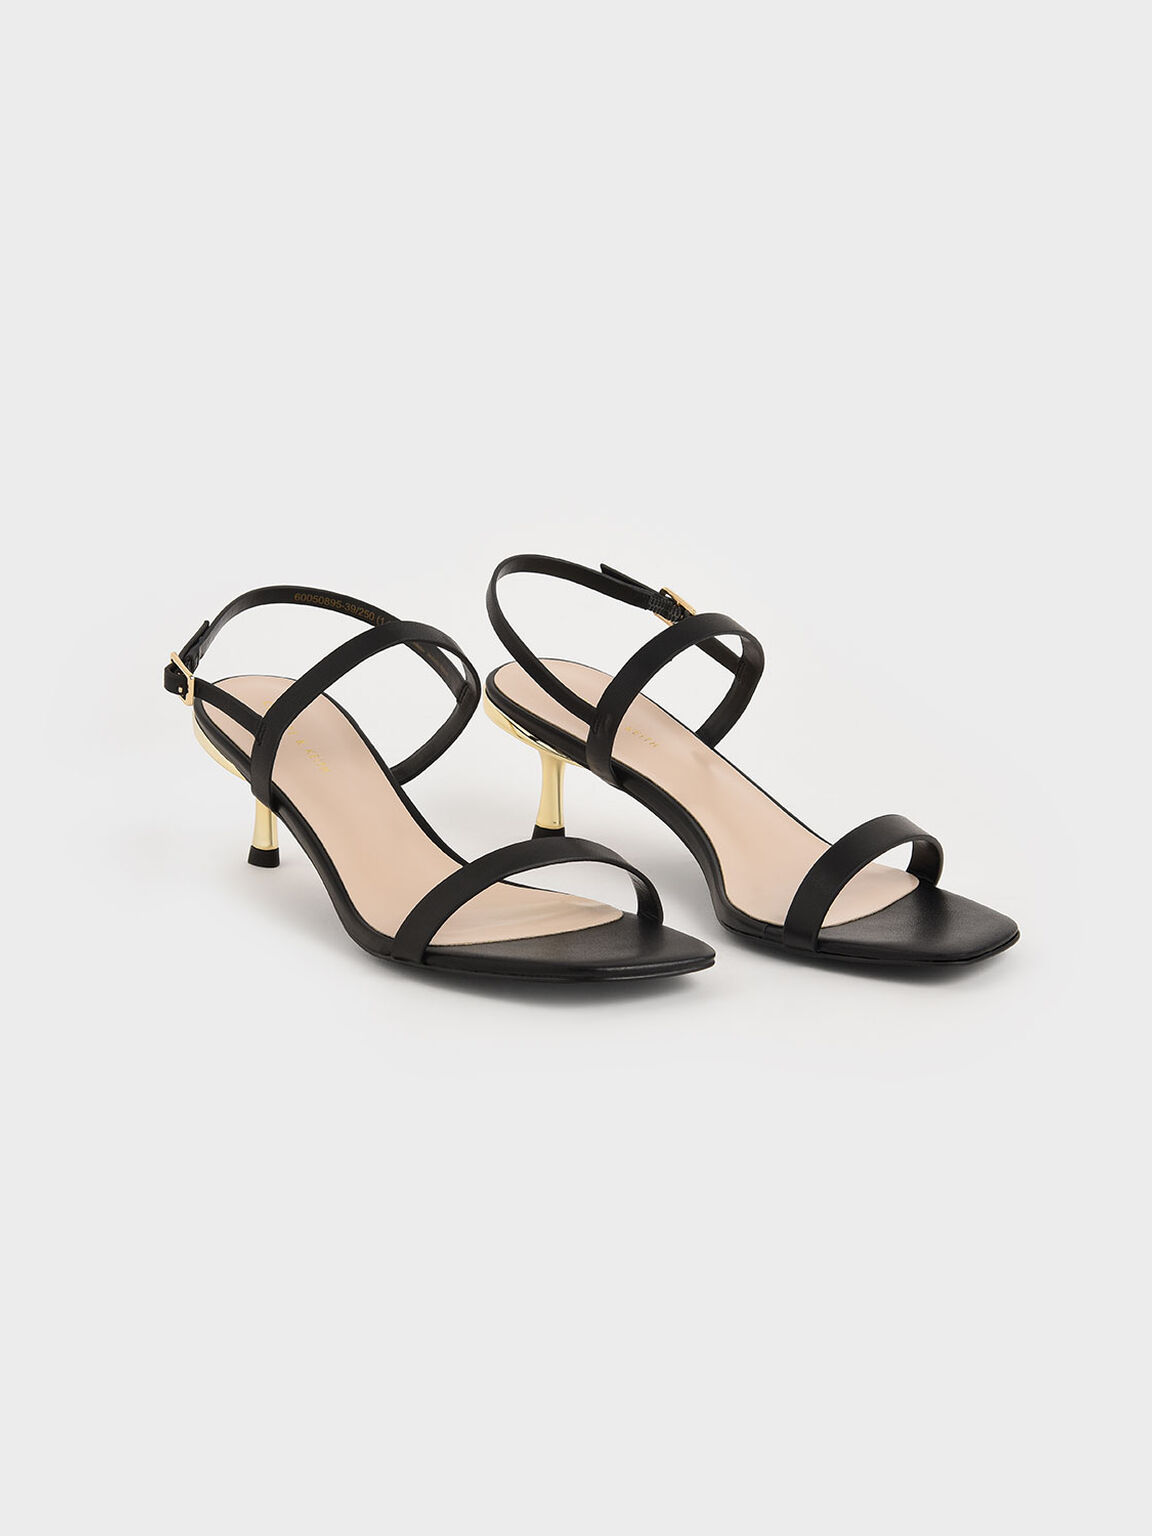 Metallic Ankle Strap Sandals, Black, hi-res